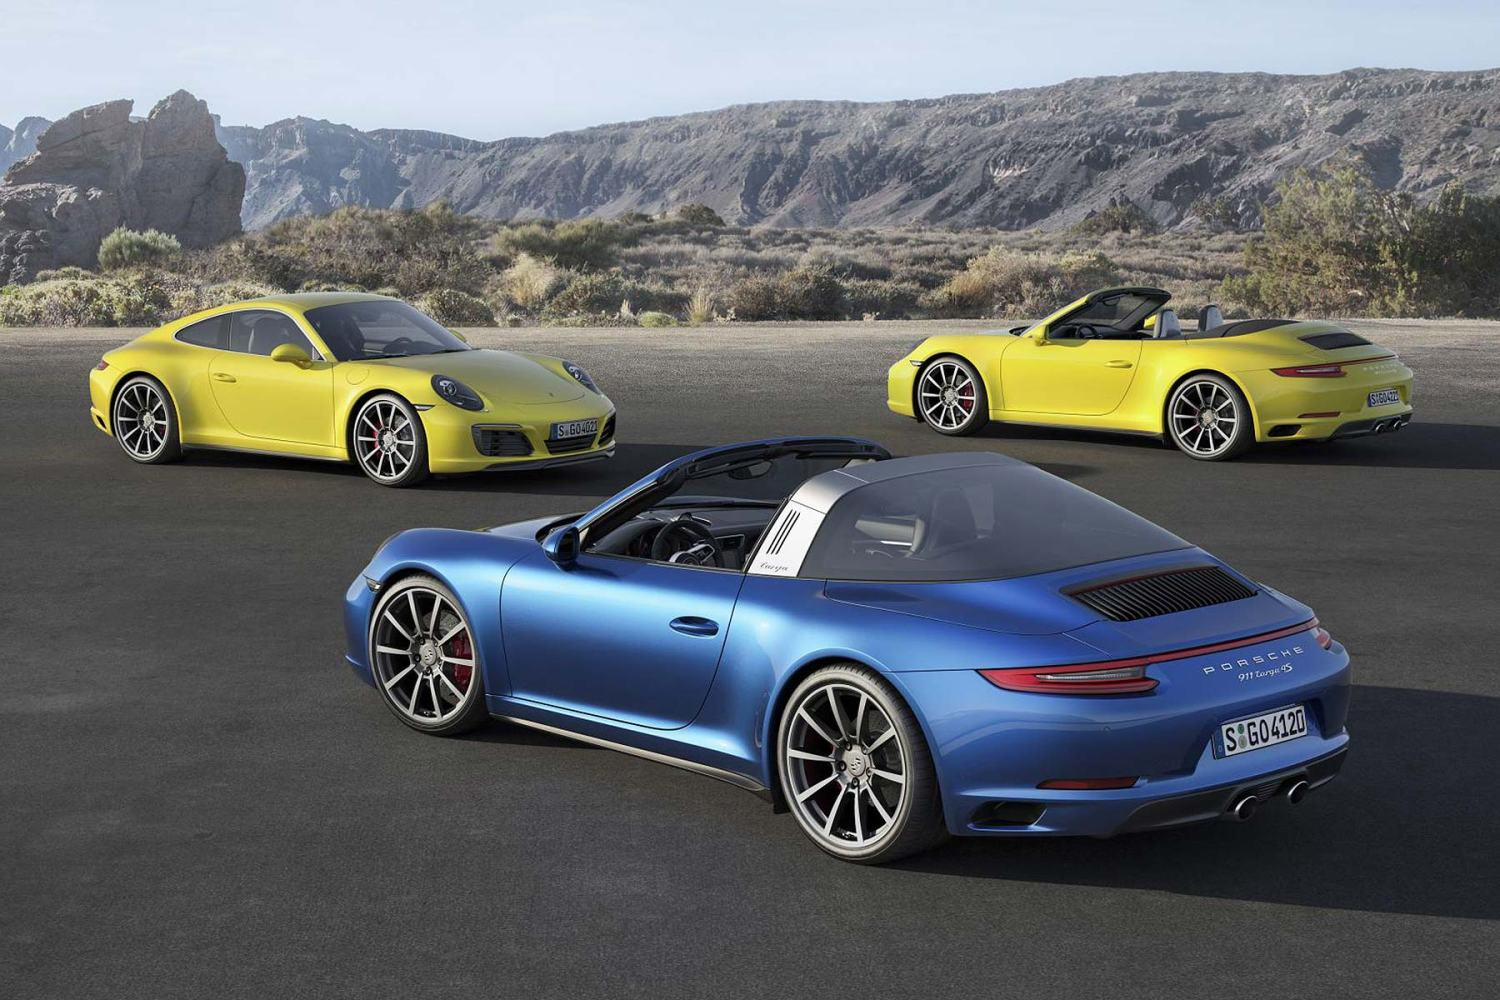 Porsche Carrera 4 and Targa 4 turbo